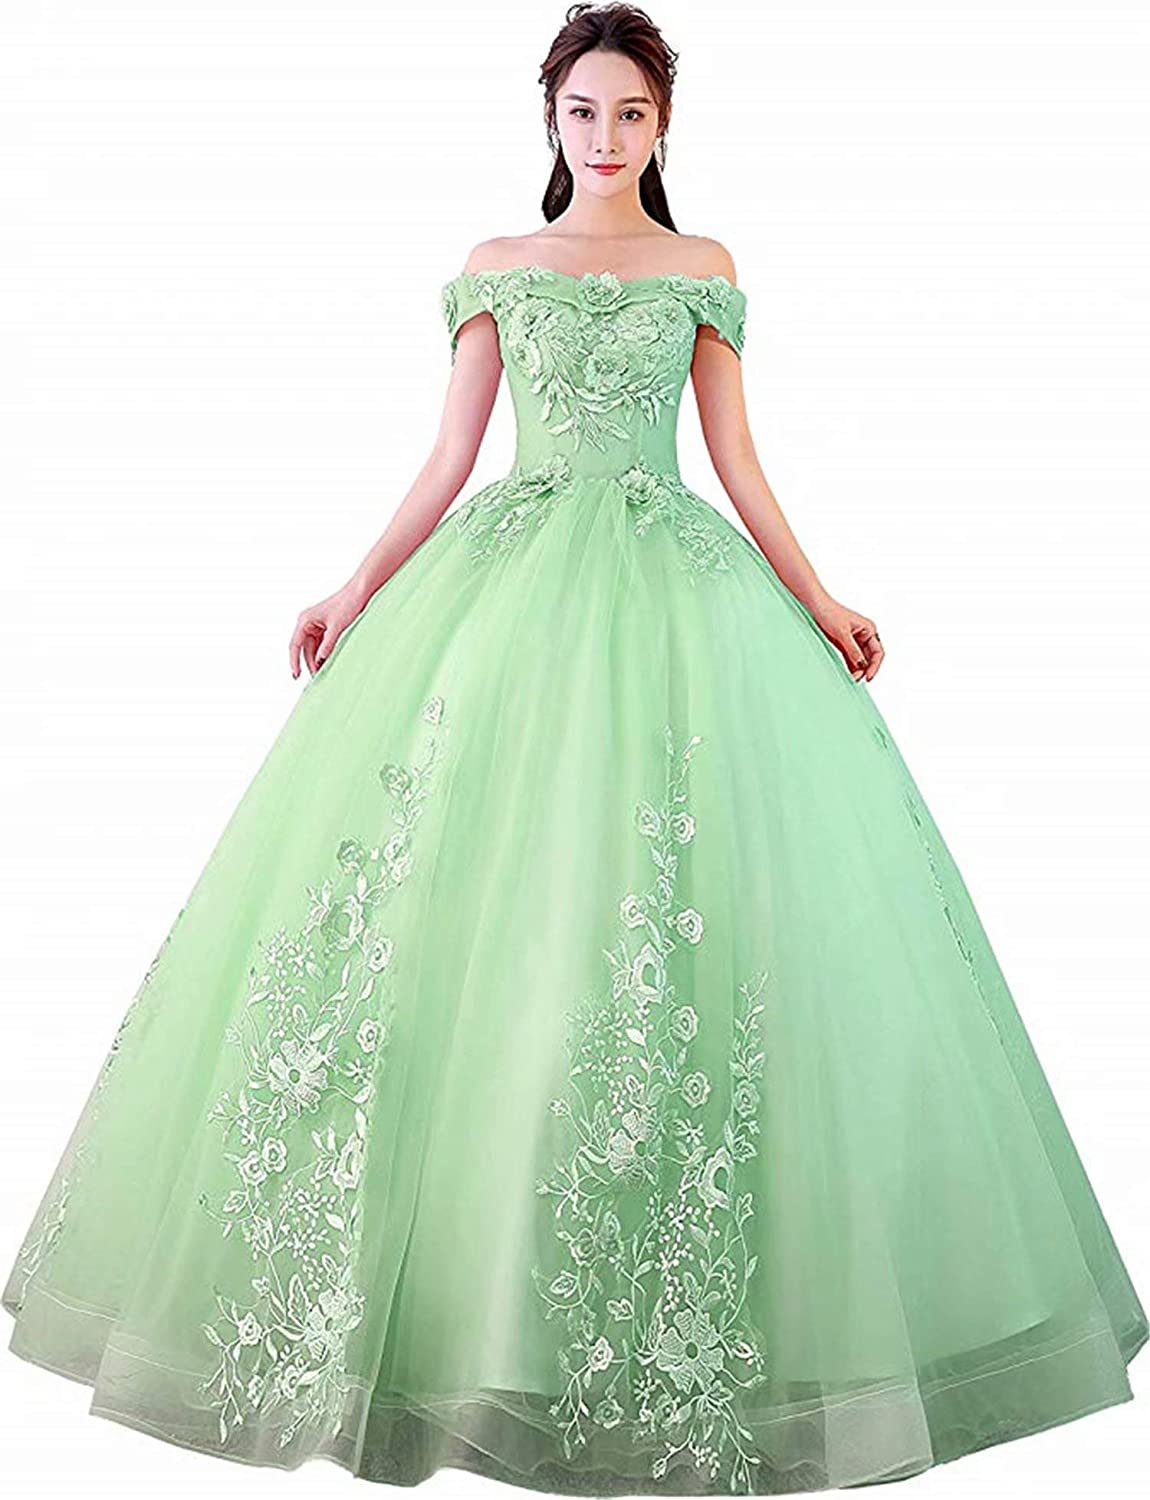 Pale Green Honeywedding Women's Sweet 16 Quinceanera Dresses Off Shoulder Lace Tulle Long Prom Ball Gowns Plus Size